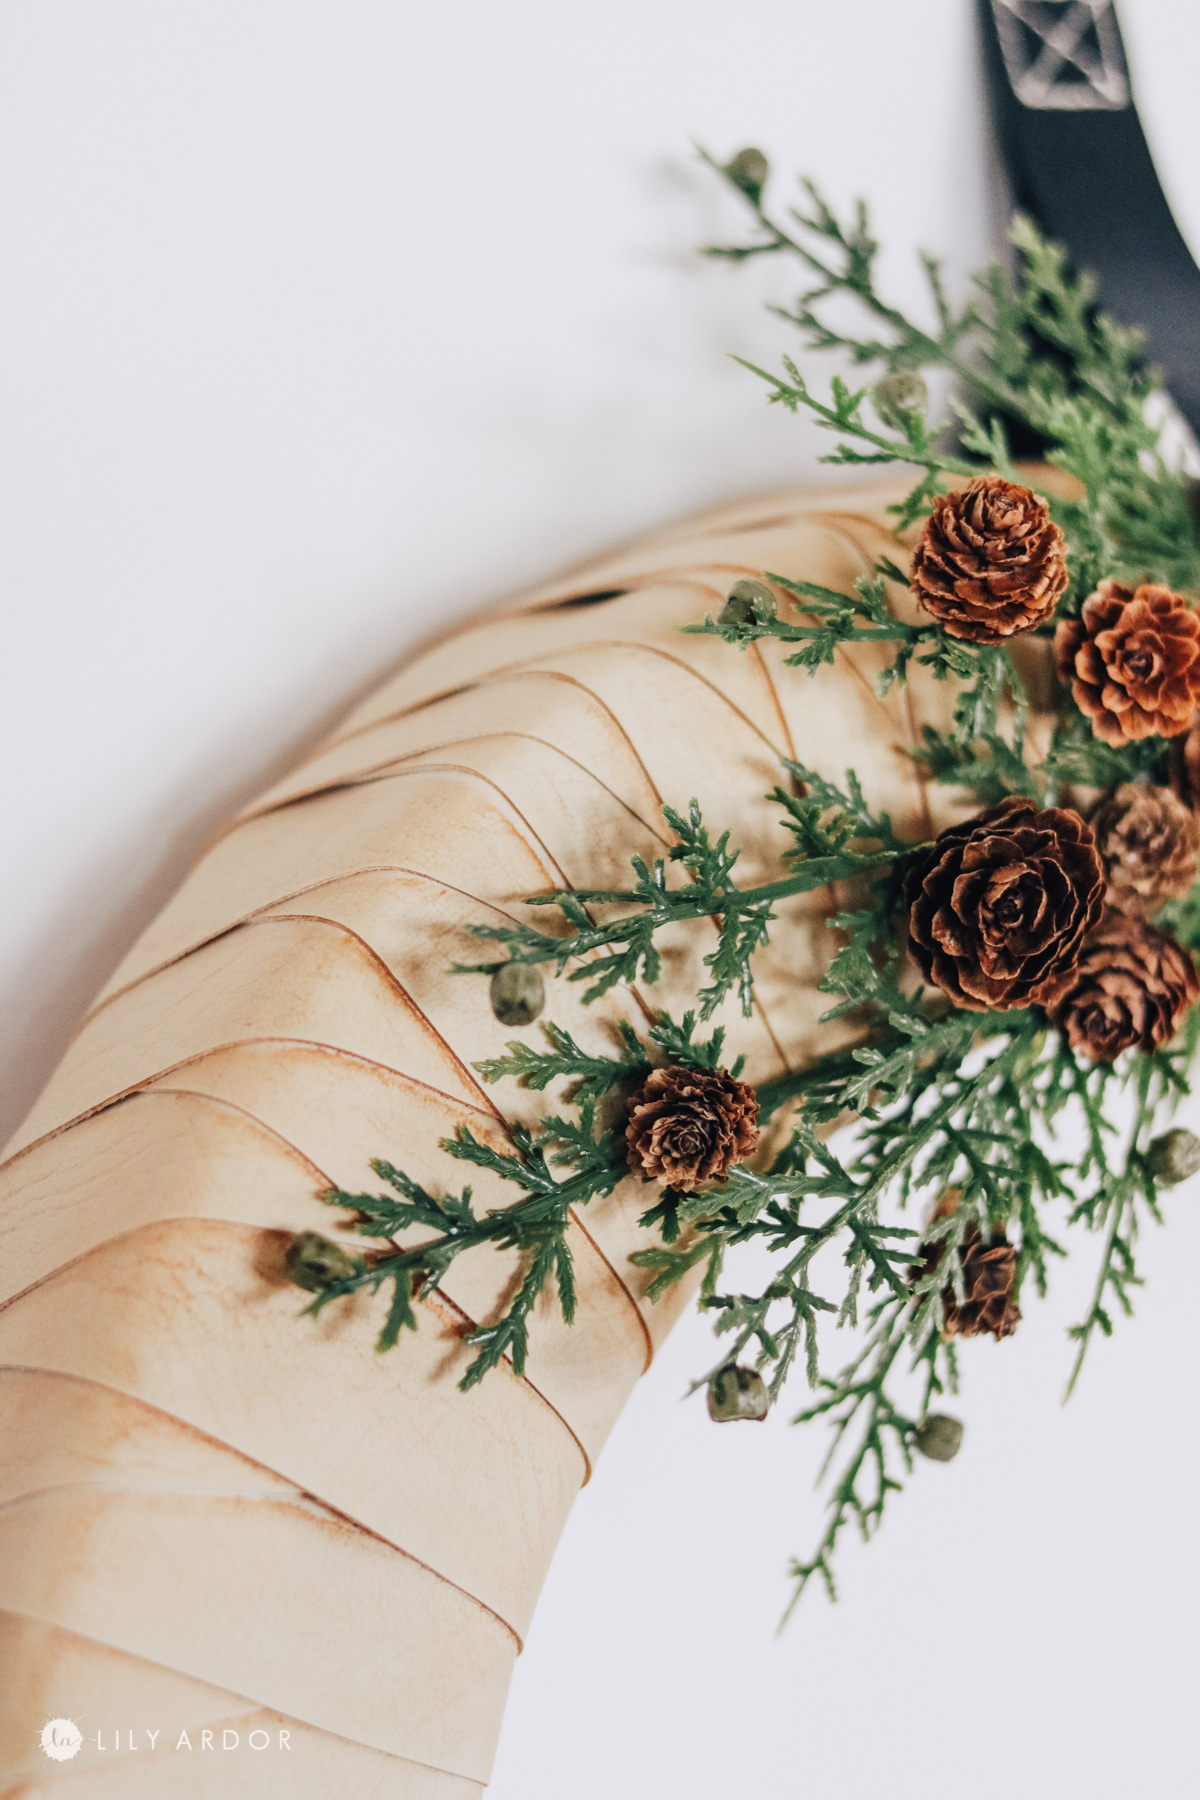 how to make a wreath minimalist style